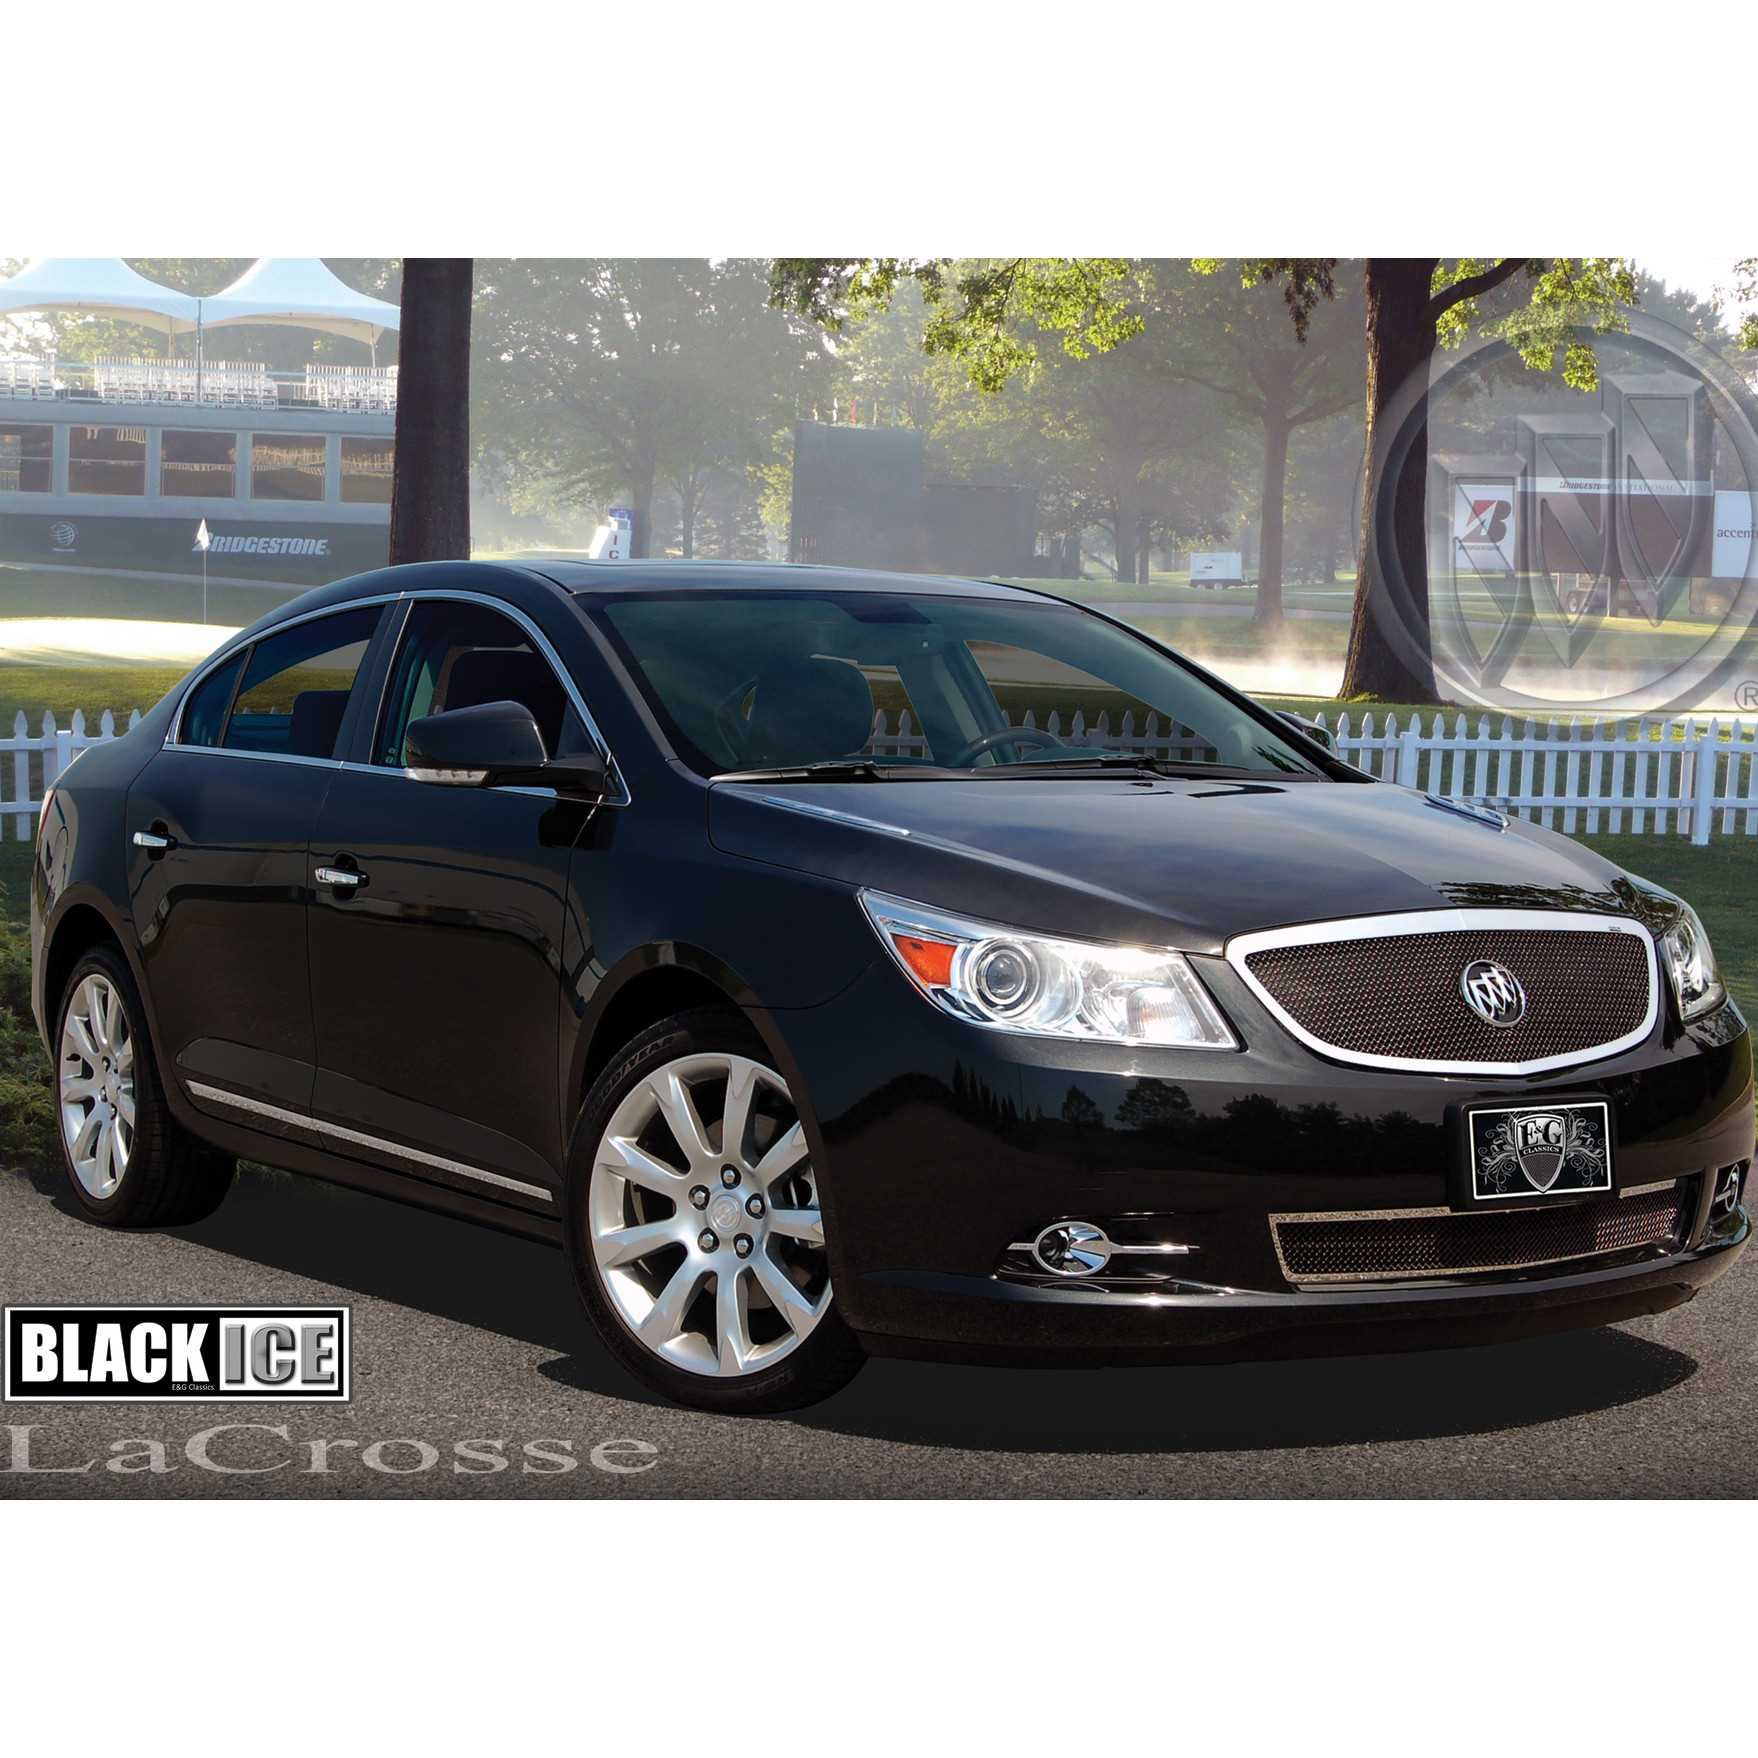 southwest listing inventory enterprise buick listings lacrosse